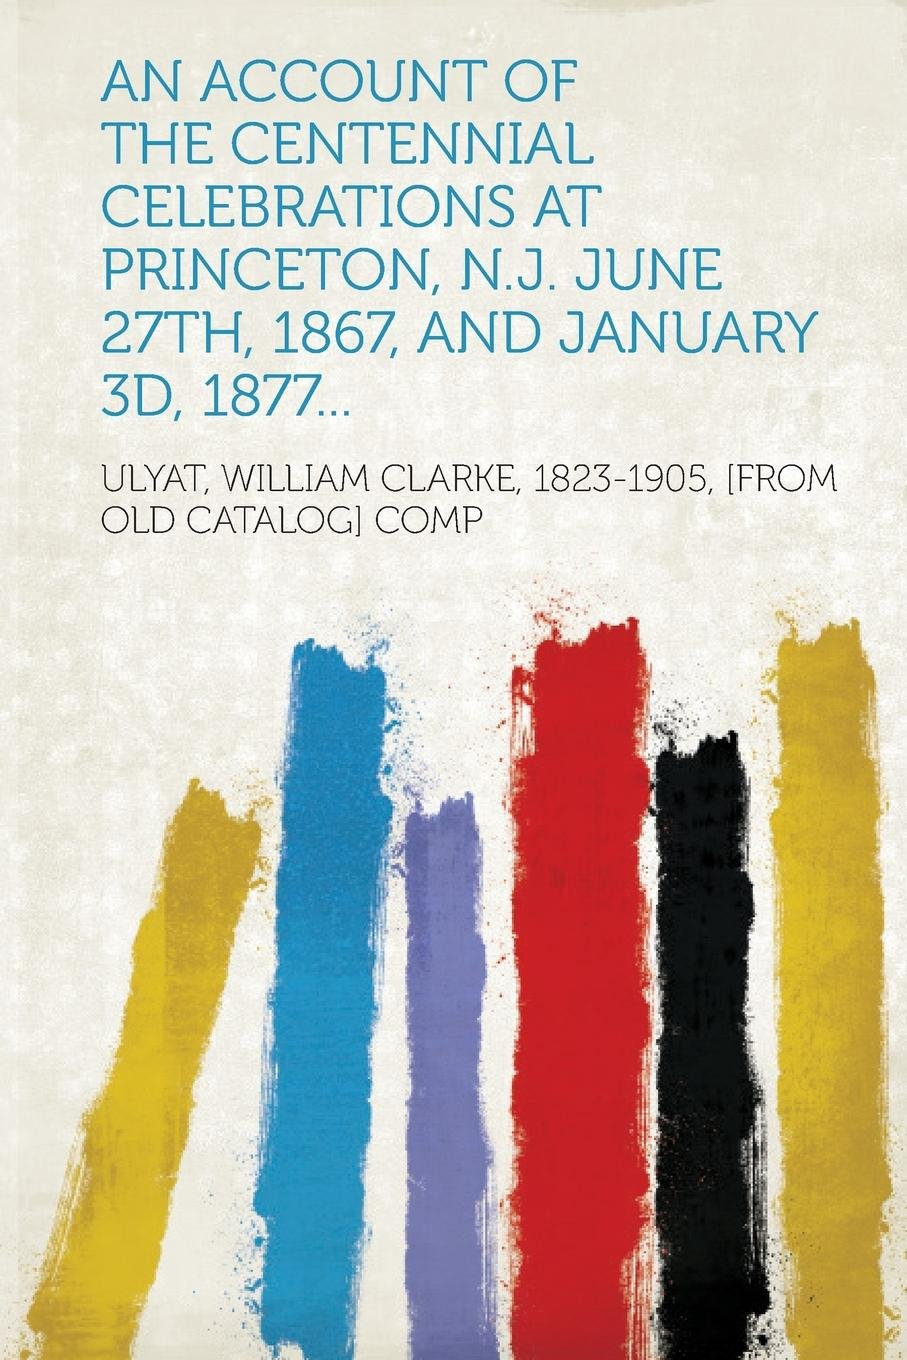 Download An Account of the Centennial Celebrations at Princeton, N.J. June 27th, 1867, and January 3D, 1877. PDF